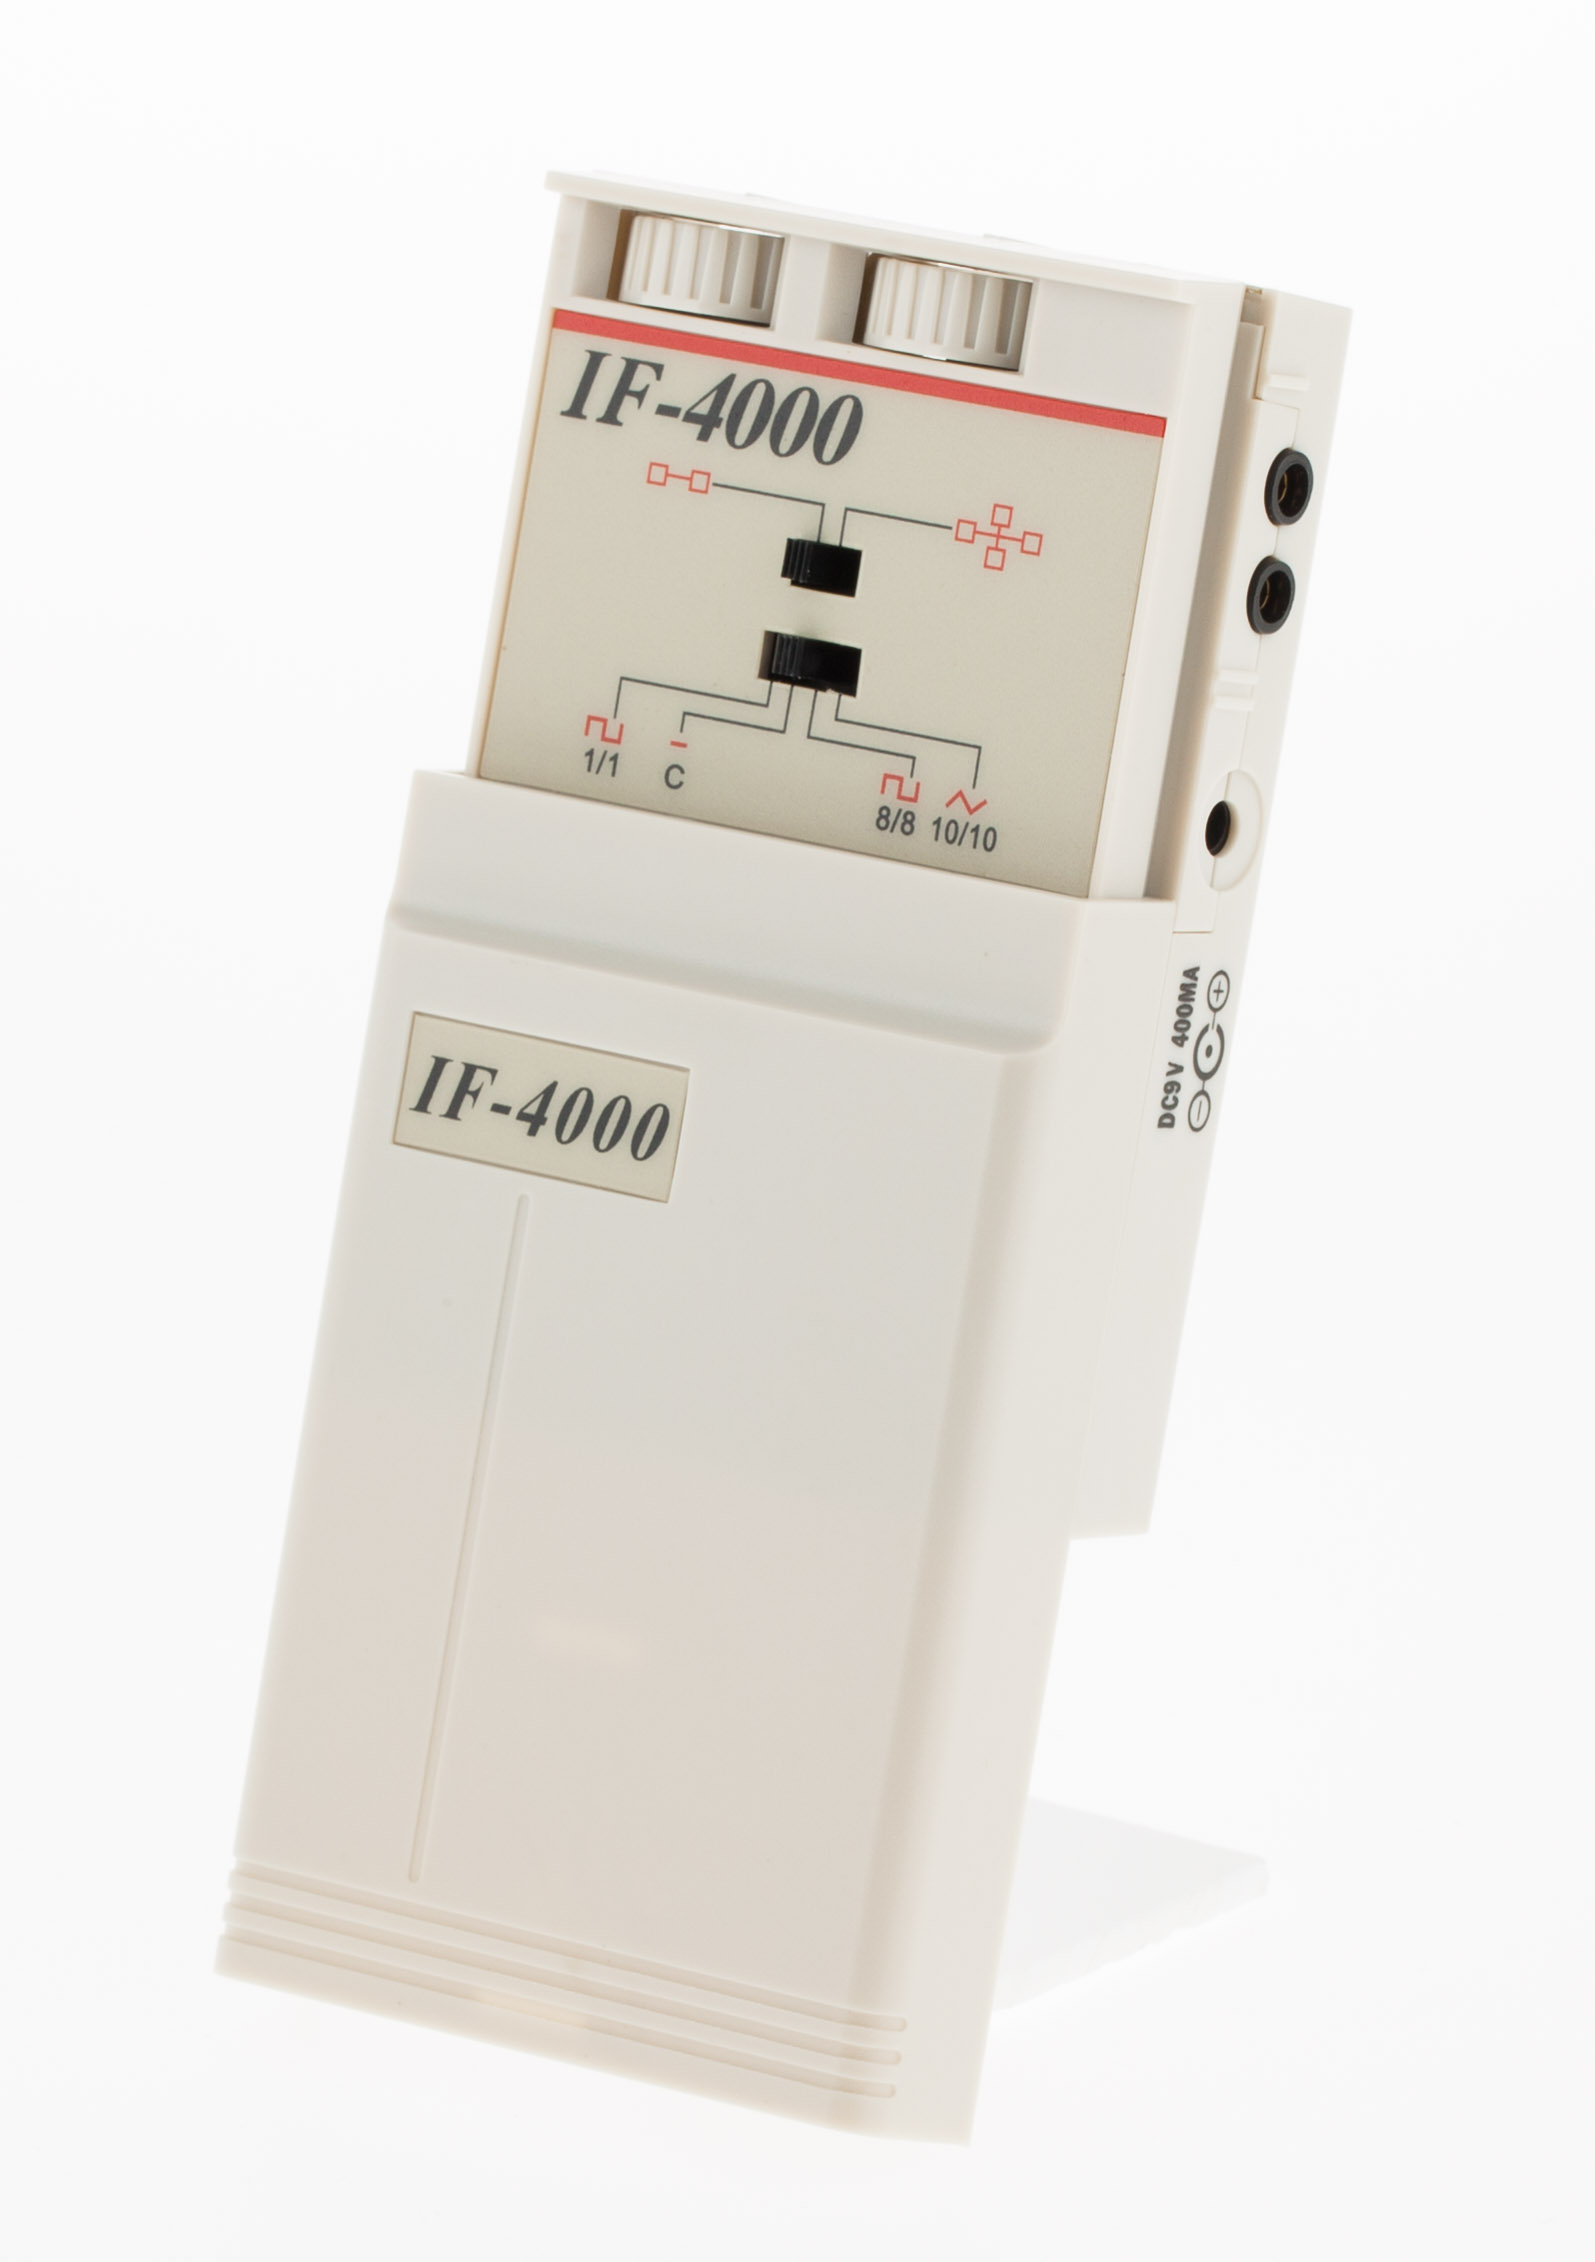 IF 4000 (Analogue Interferential)